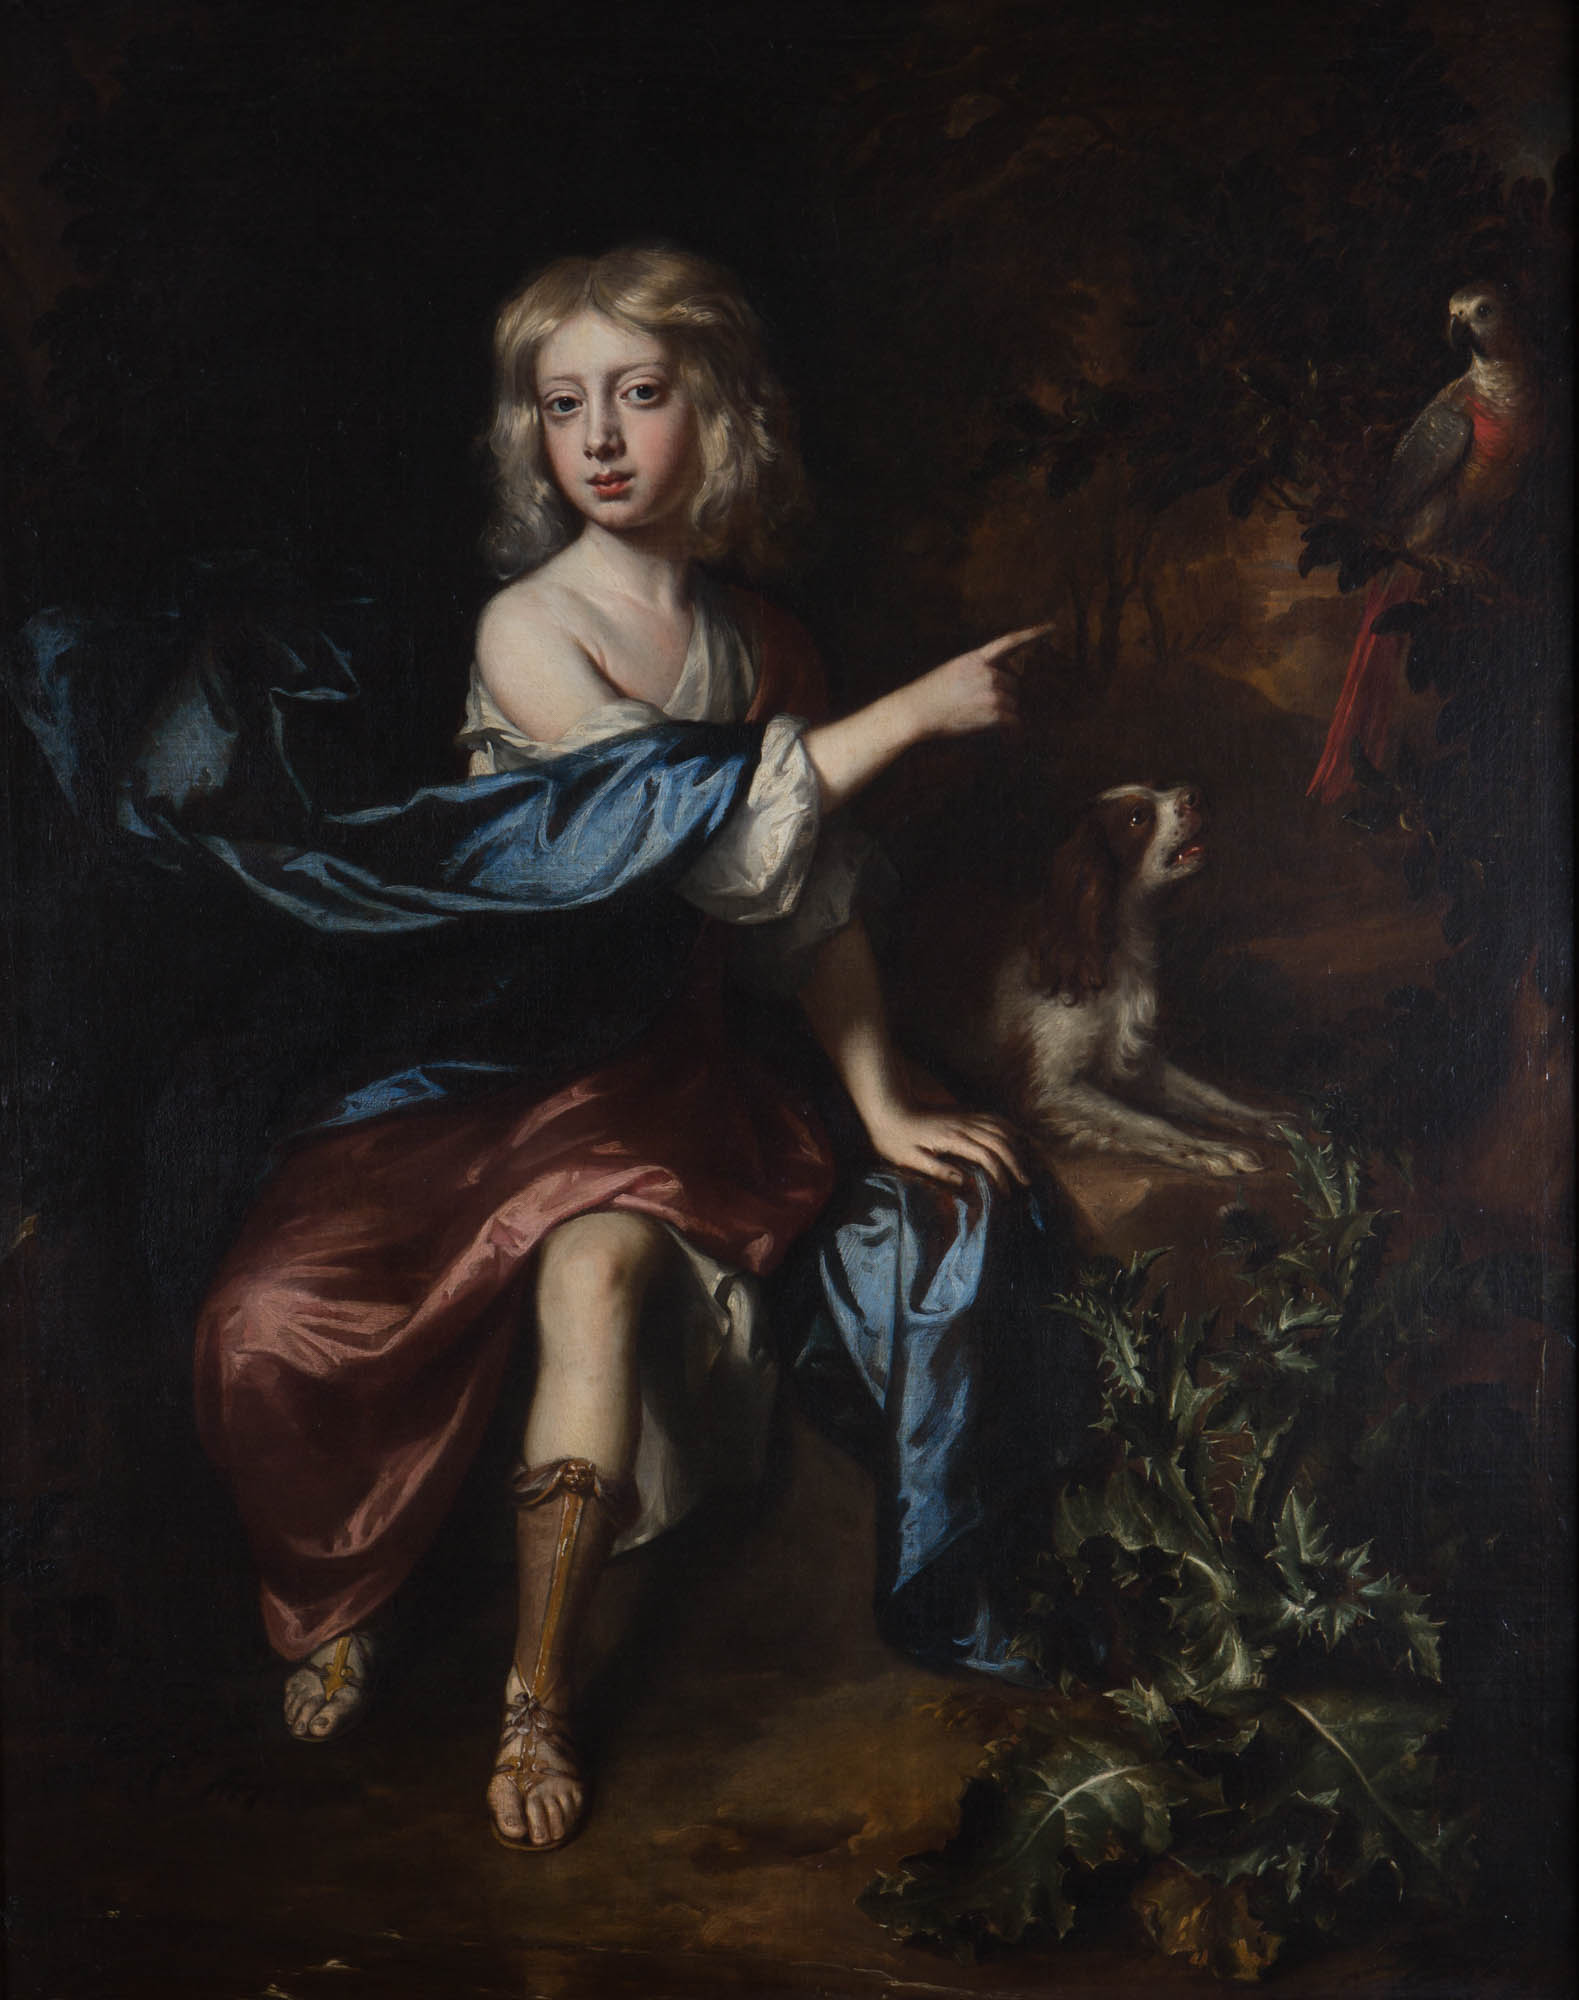 Portrait of a the Hon. William Cecil, as a Boy, by William Wissing (1656-1687).